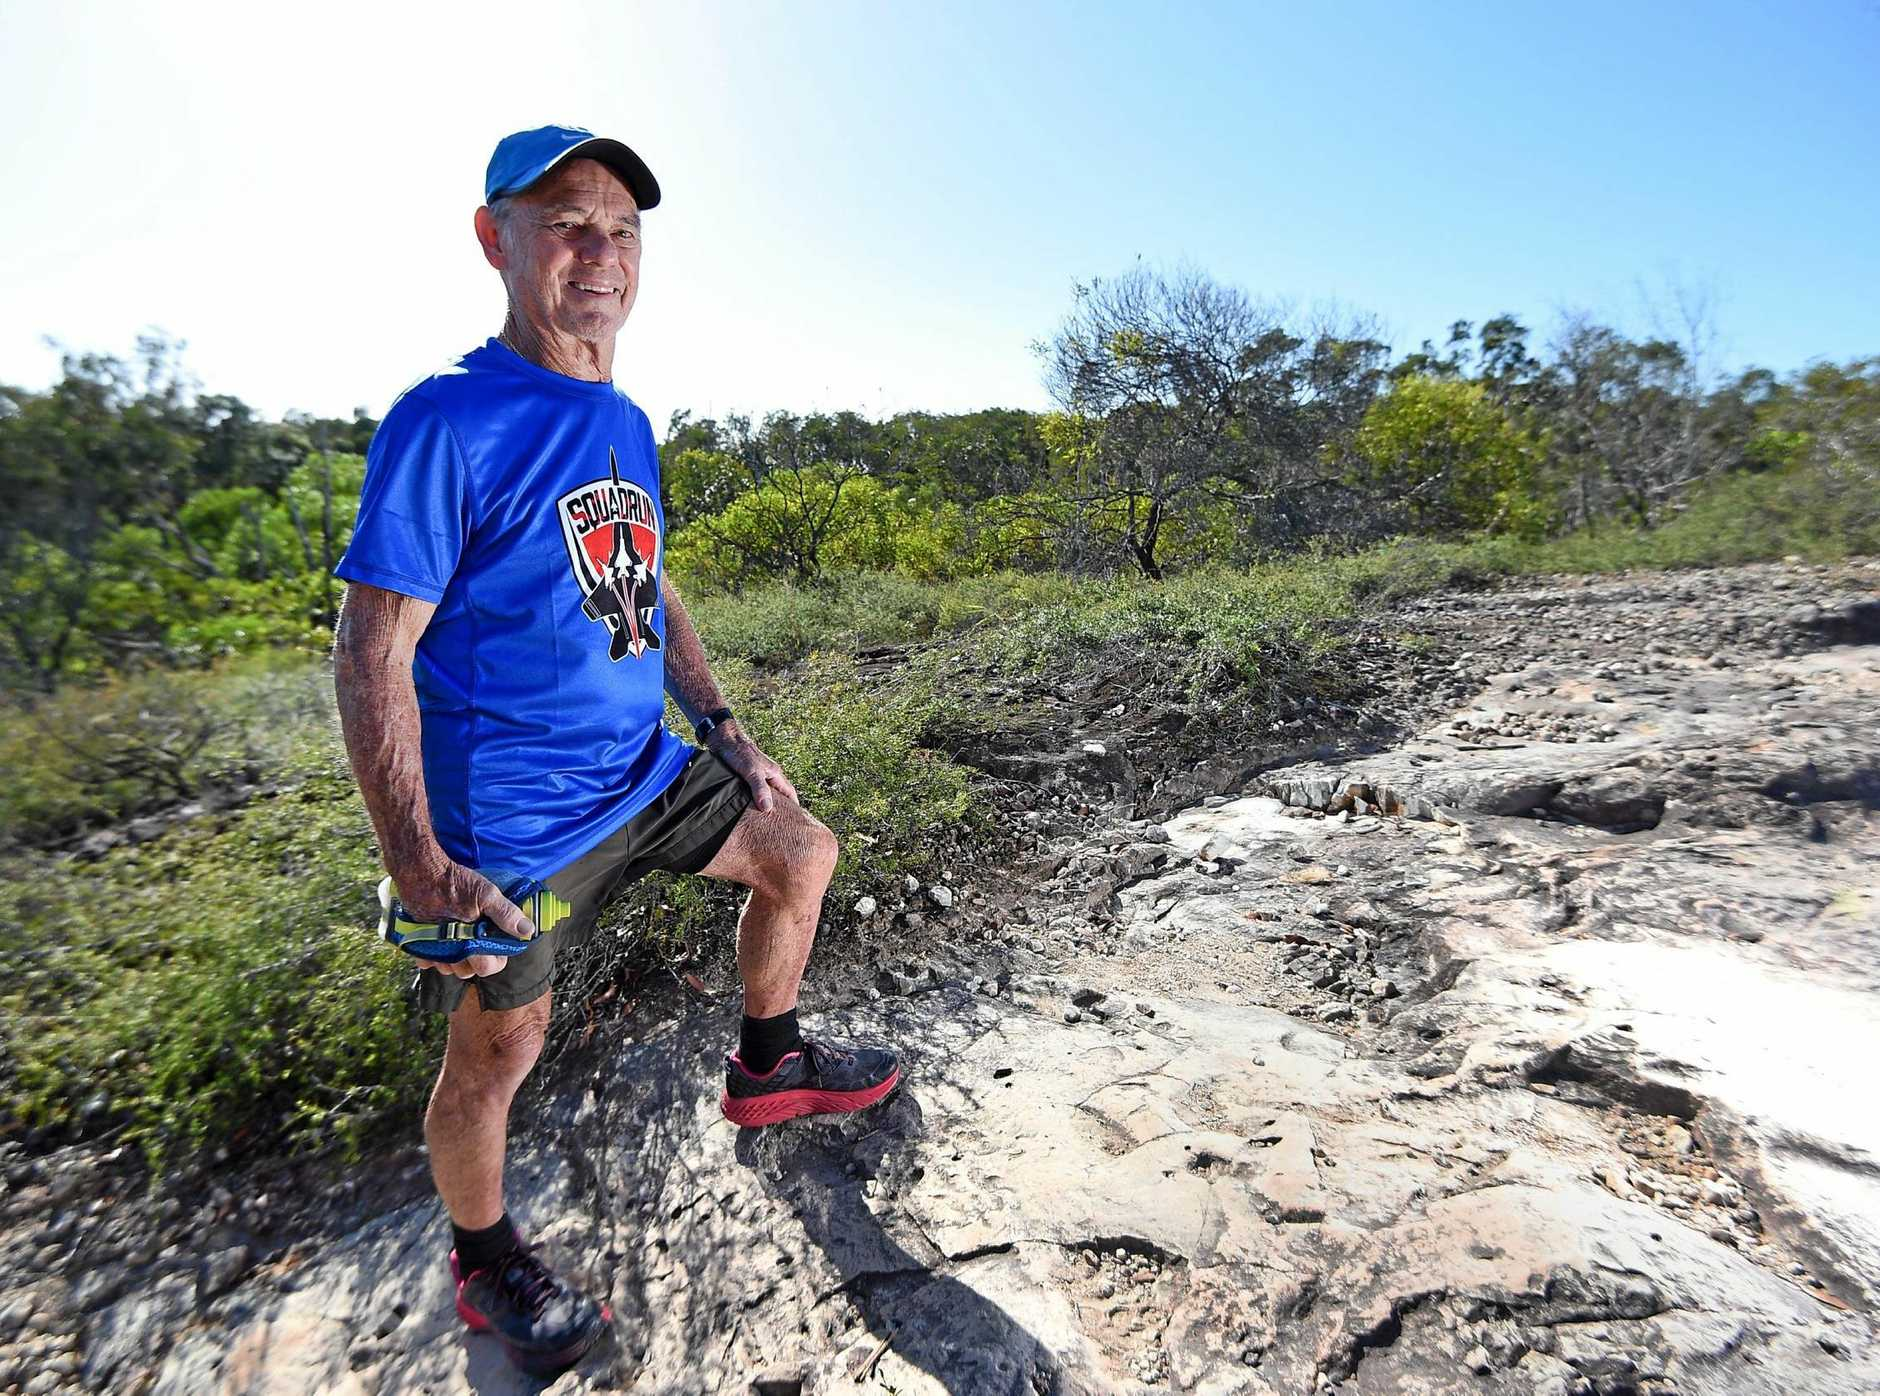 TRAINING: Frank Falappi at Emu Mountain. He will compete in the Ultra-Trail Australia running event in the Blue Mountains.